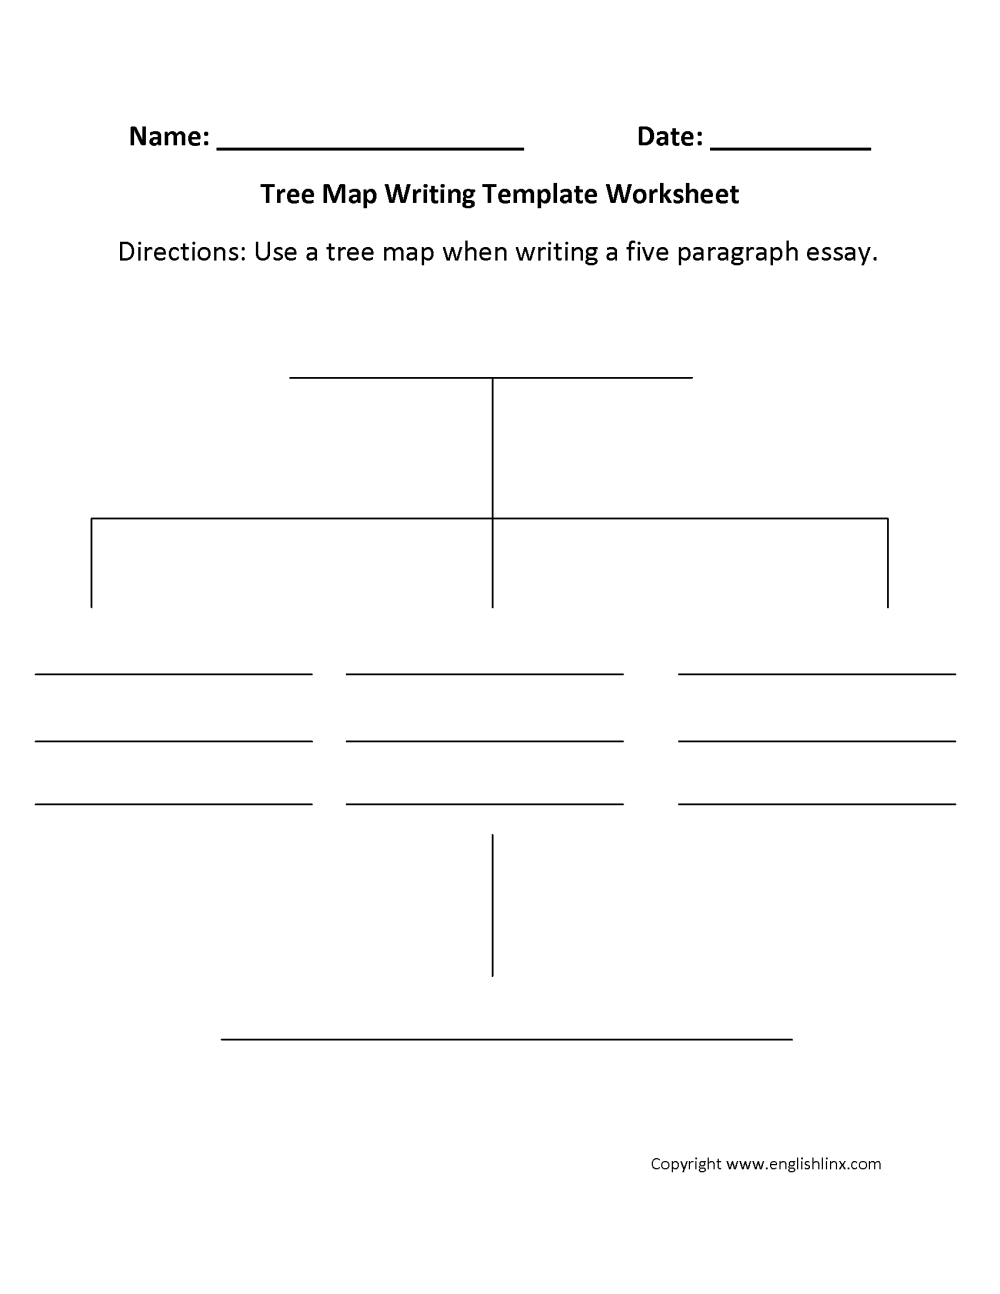 medium resolution of Writing Template Worksheets   Tree Map Writing Template Worksheet